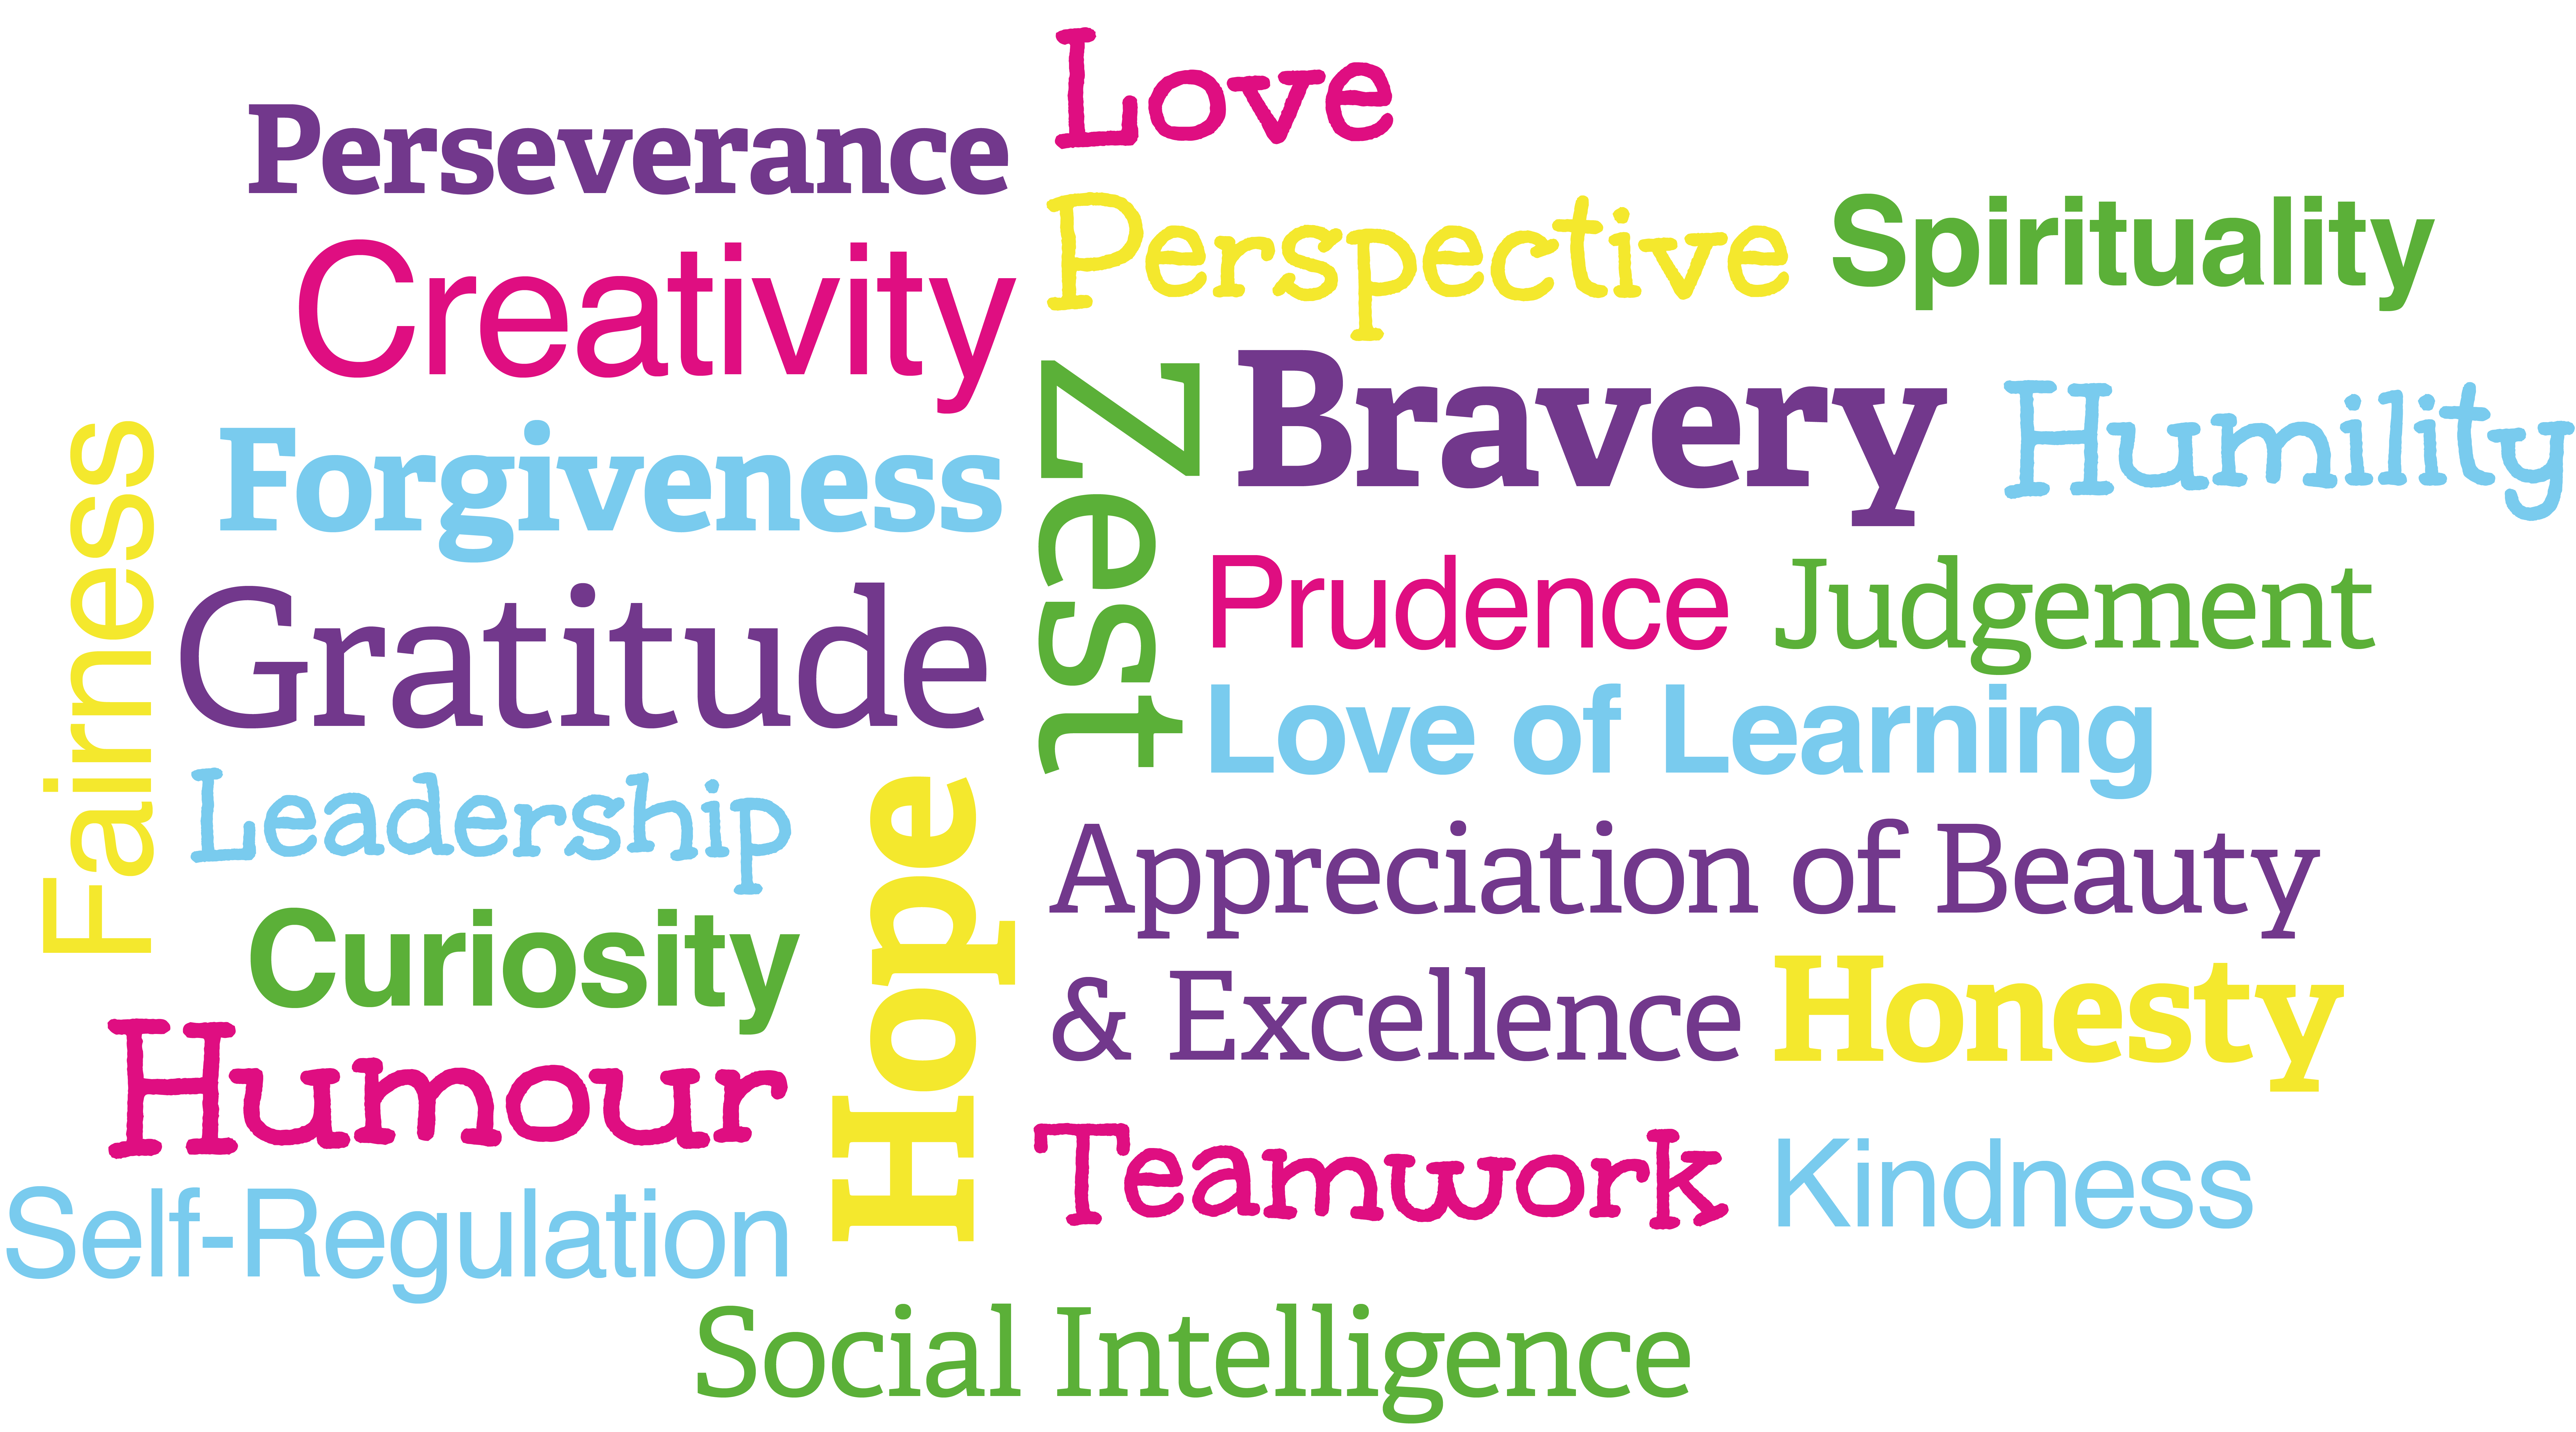 VIA Character Strengths Wordle